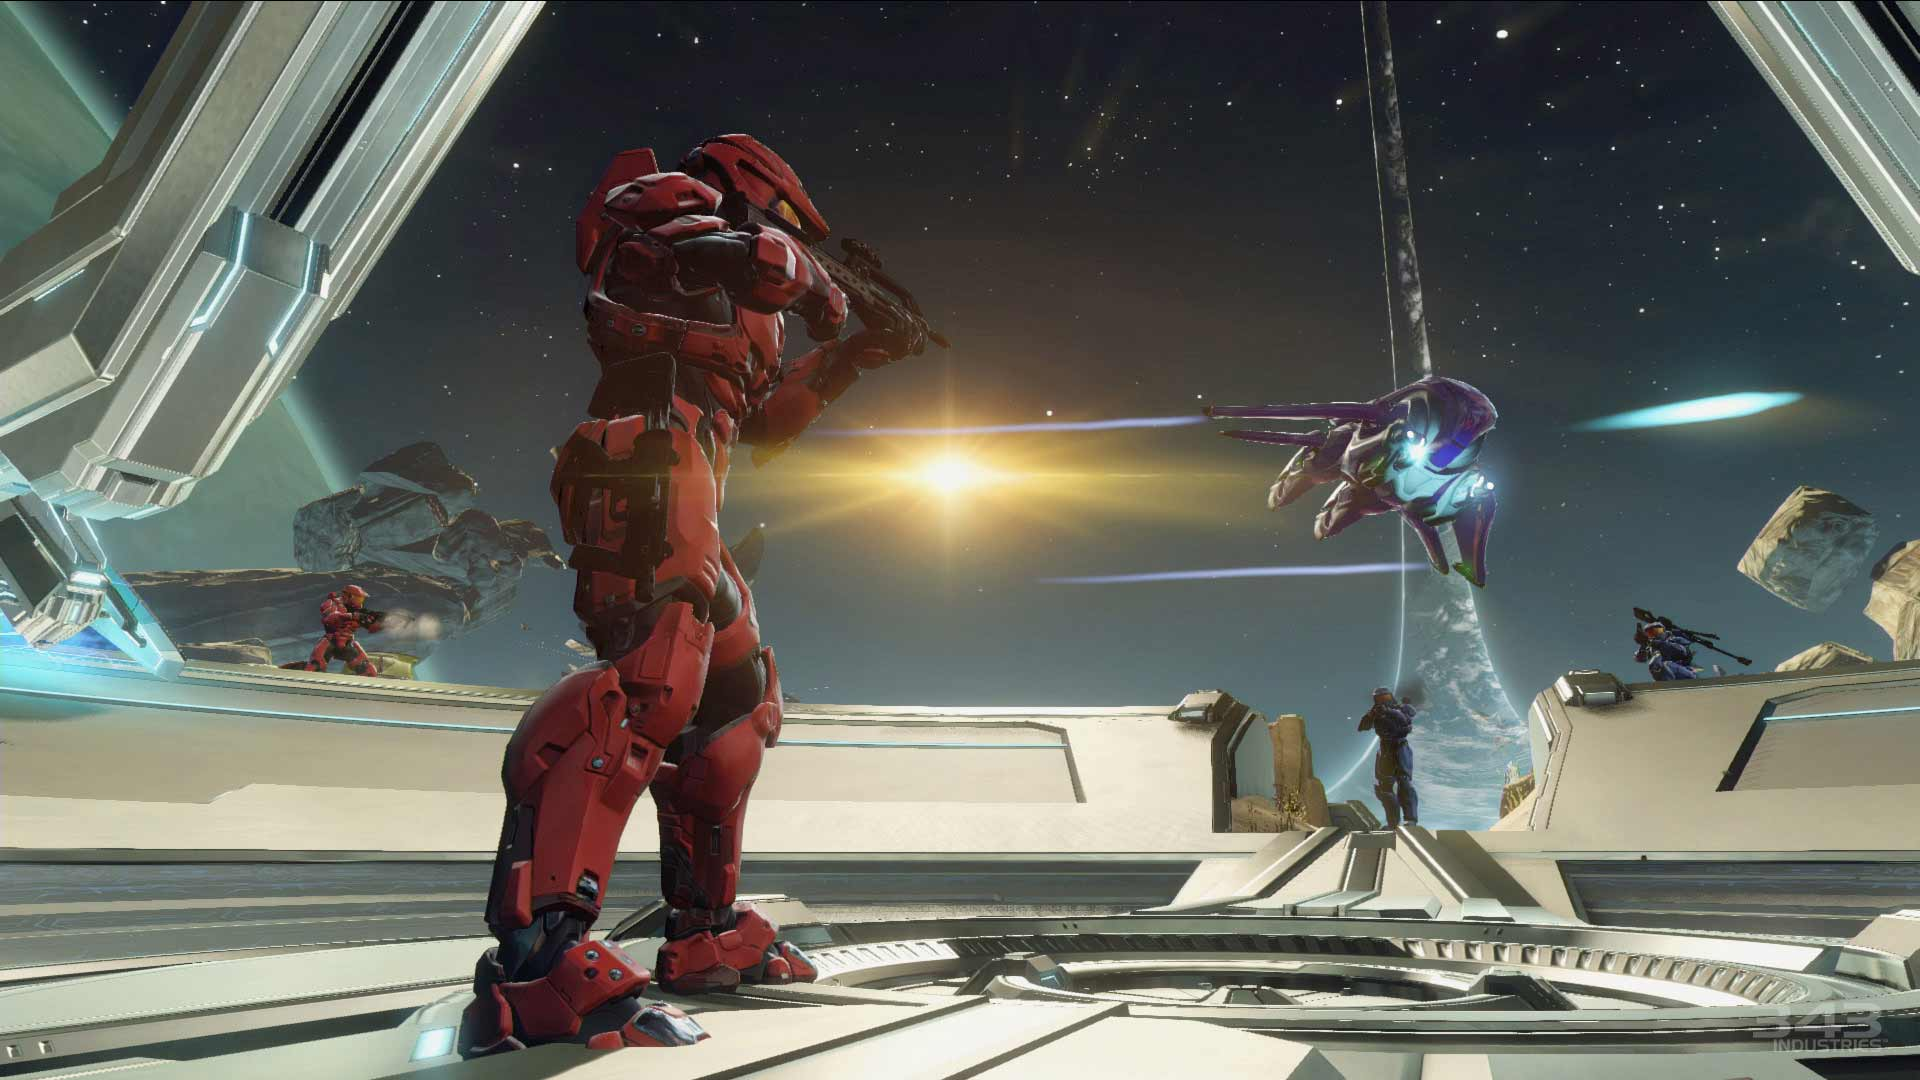 Halo 2 Xbox One X Screenshot